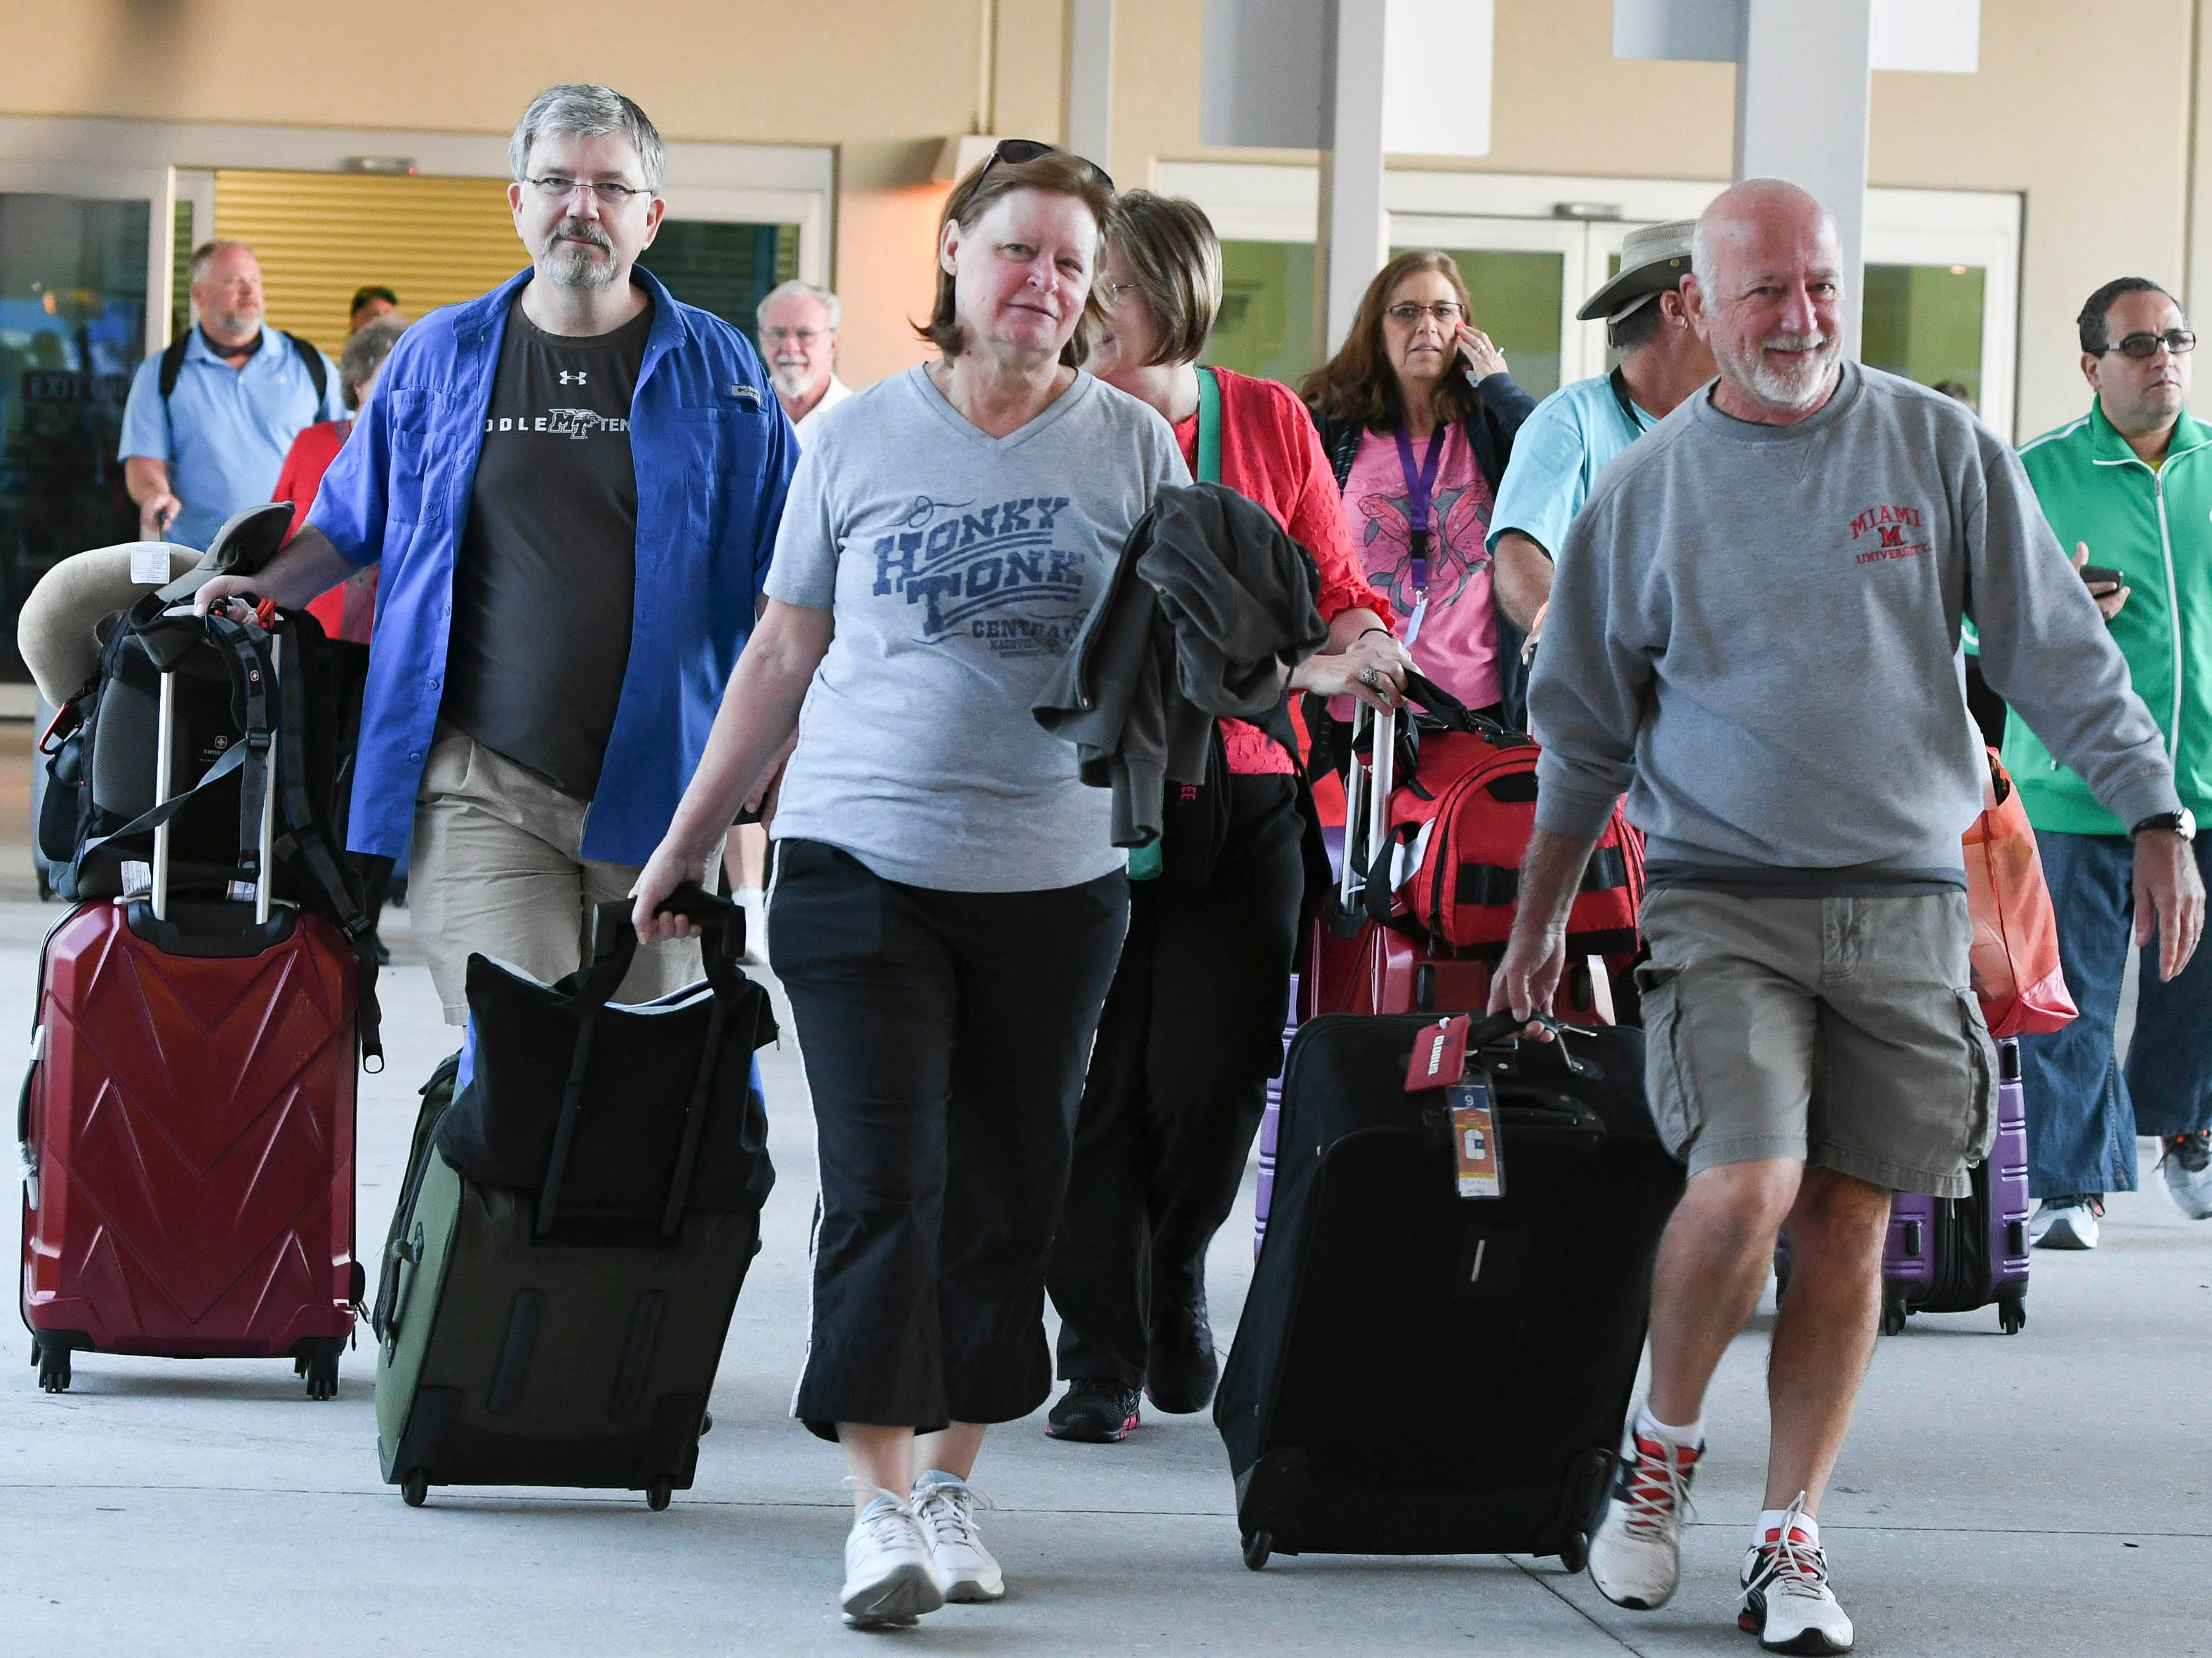 Passengers disembark from cruise ship Oasis of the Seas early Saturday morning at Port Canaveral.  The ship returned to port a day early due to an outbreak of Norovirus.